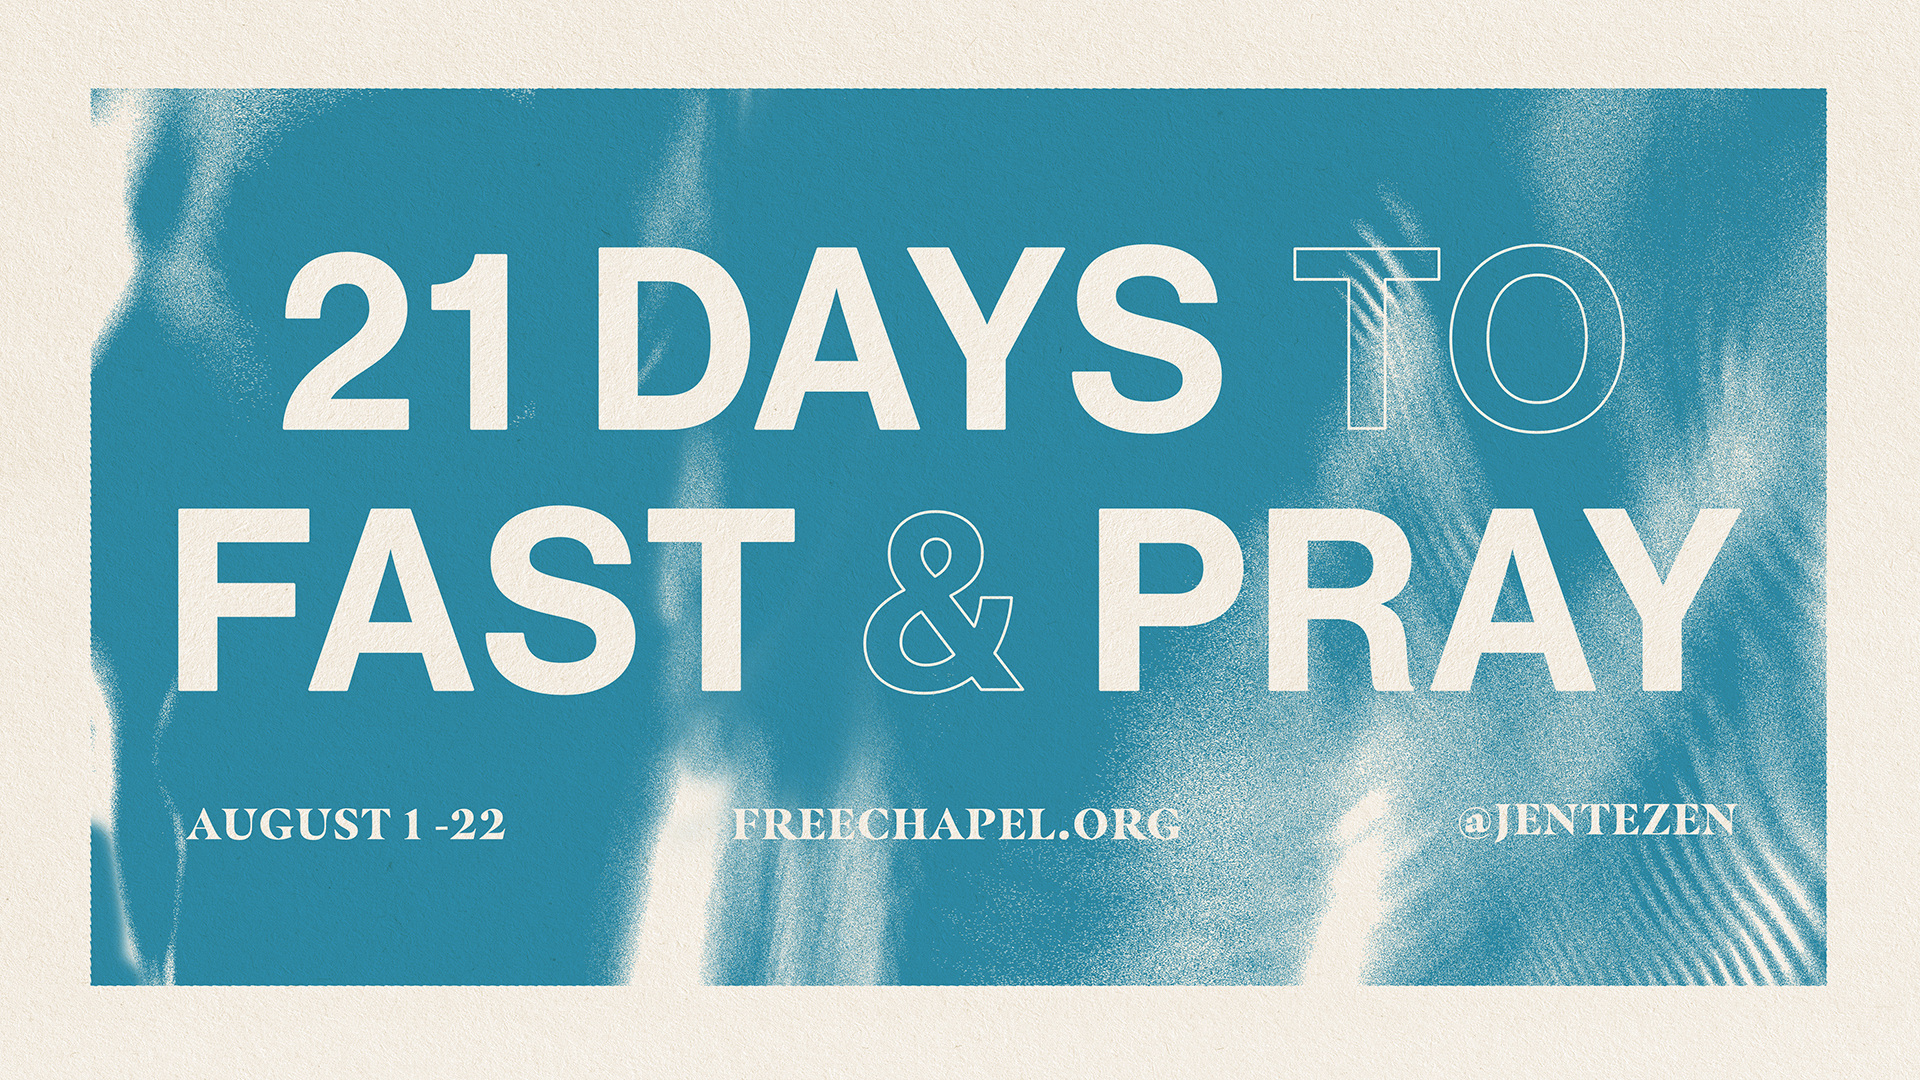 21 Day Fast at the Spartanburg campus